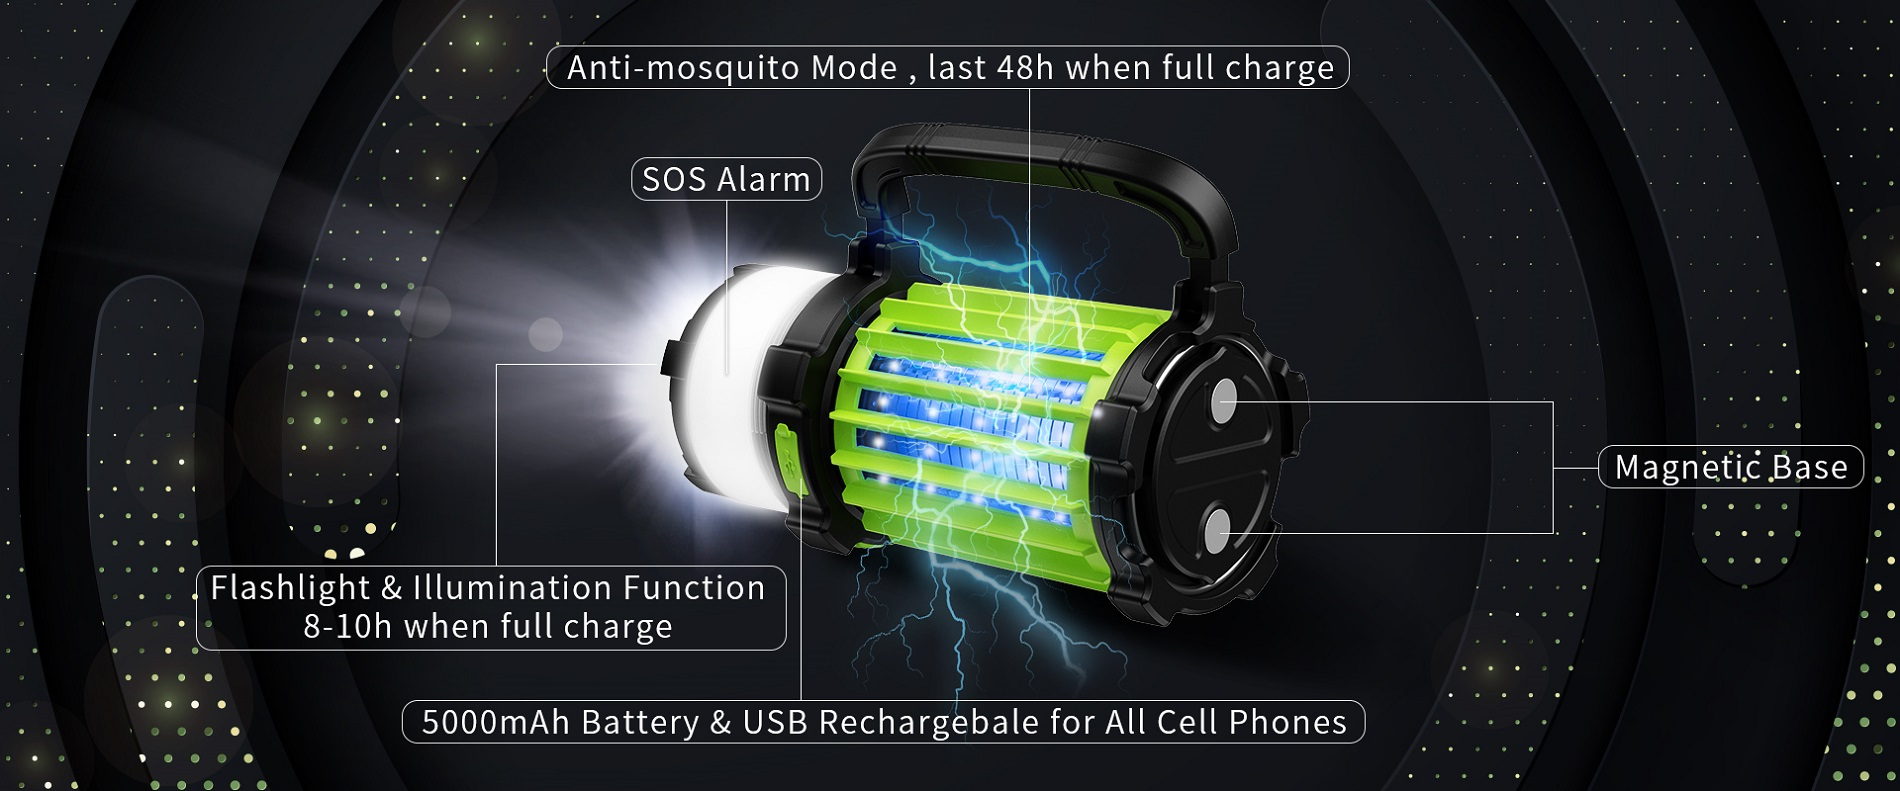 5000mAh Outdoor Camping Lantern with Bug Zapper